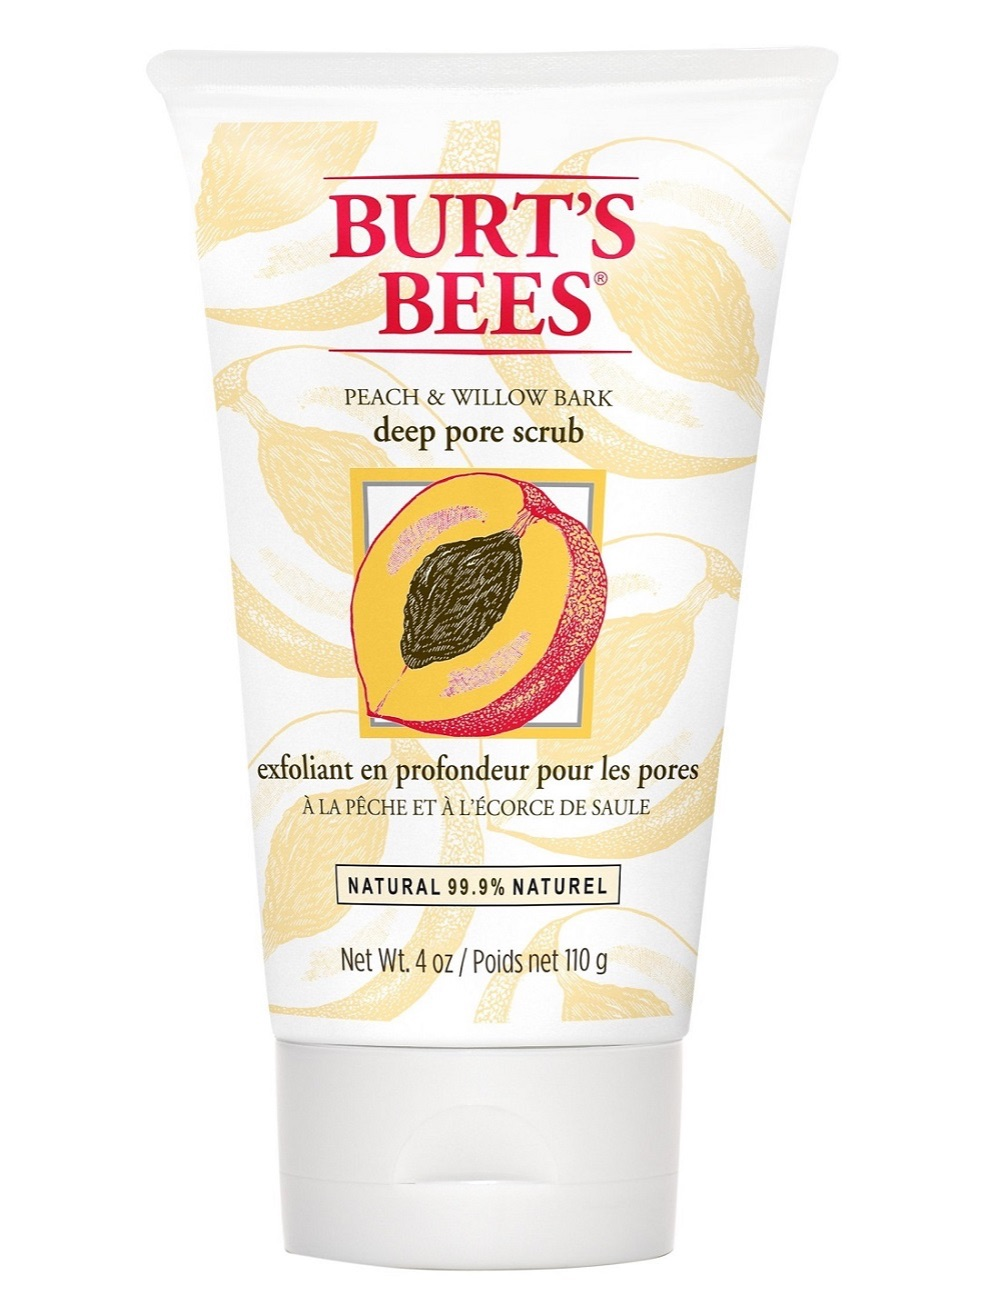 Burt's Bees Peach & Willow Bark Deep Pore Scrub 110g